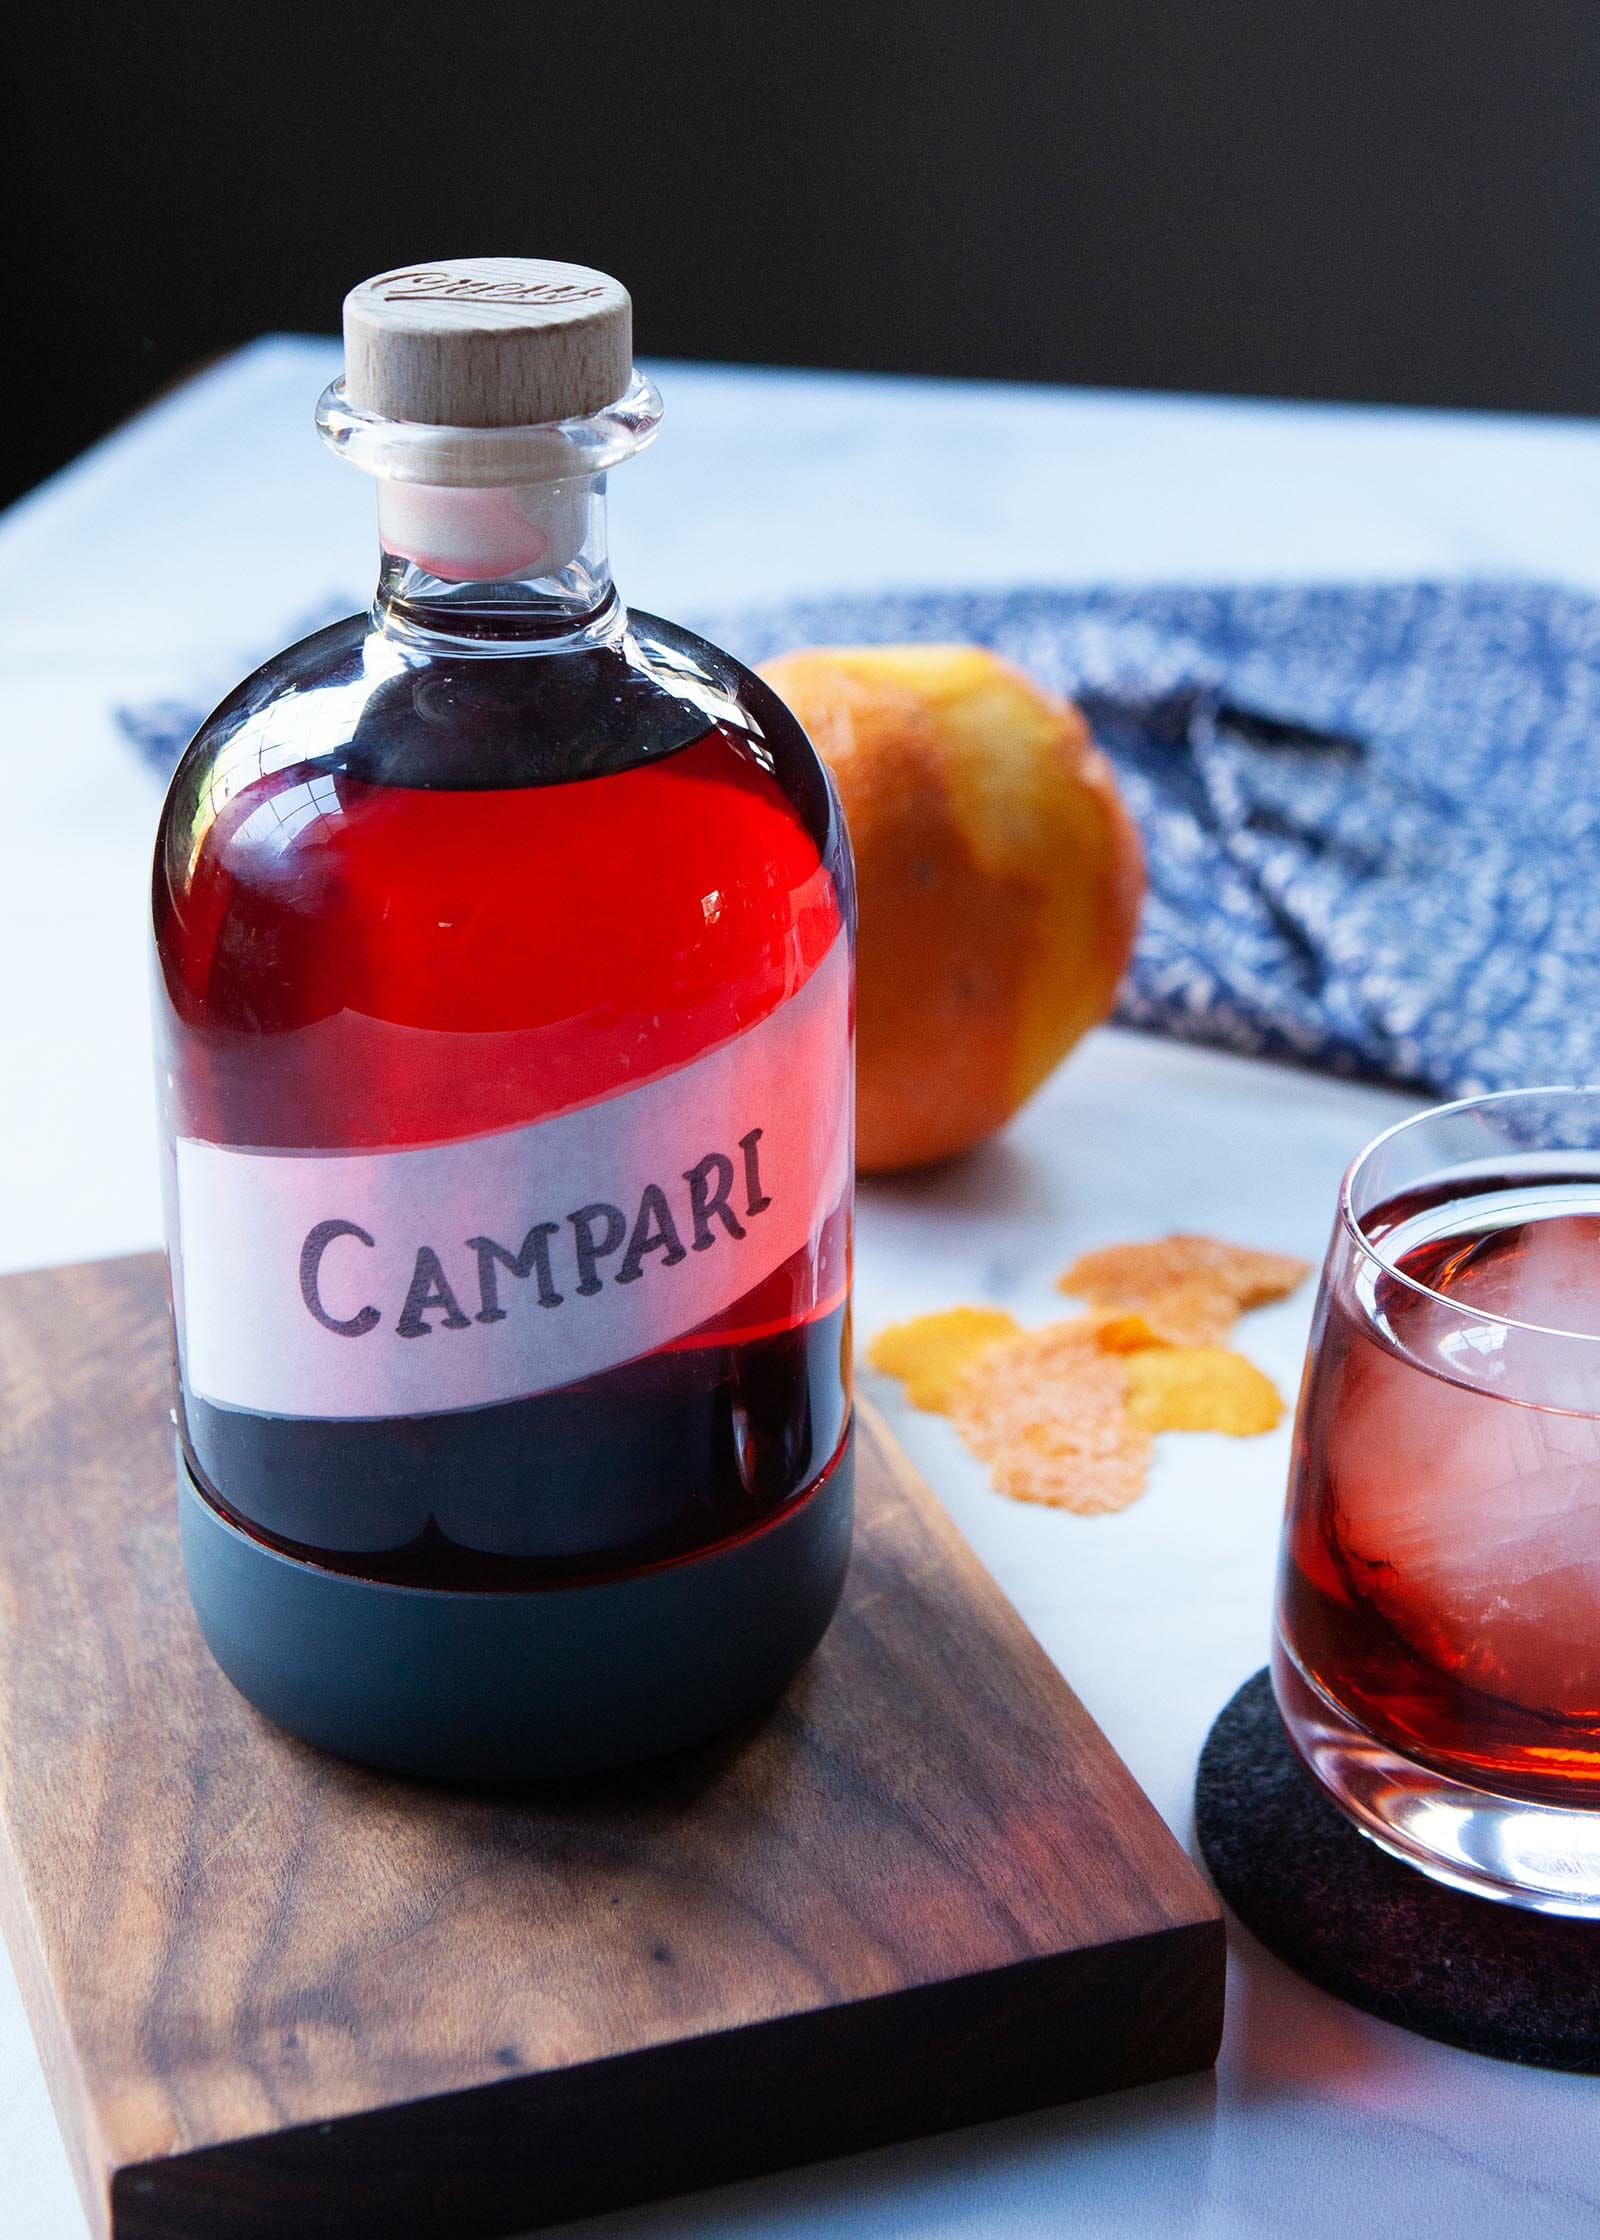 Homemade campari in a glass jar and set on a wooden board.